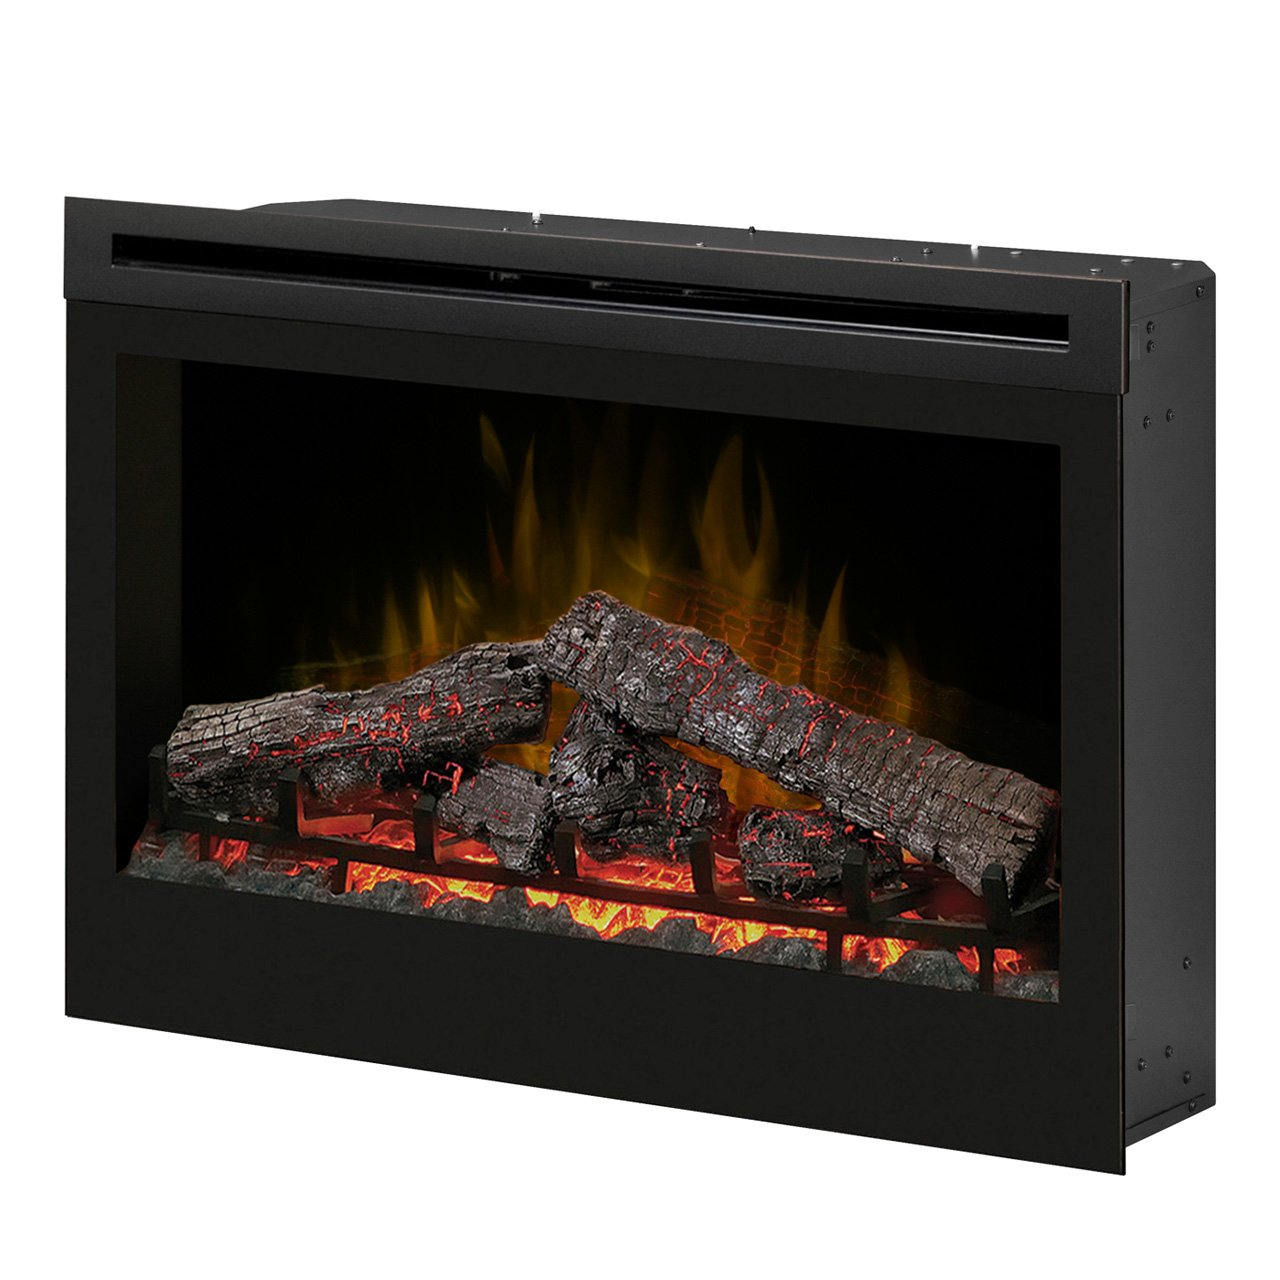 Electric Fireplace Manufacturers New Dimplex Df3033st 33 Inch Self Trimming Electric Fireplace Insert